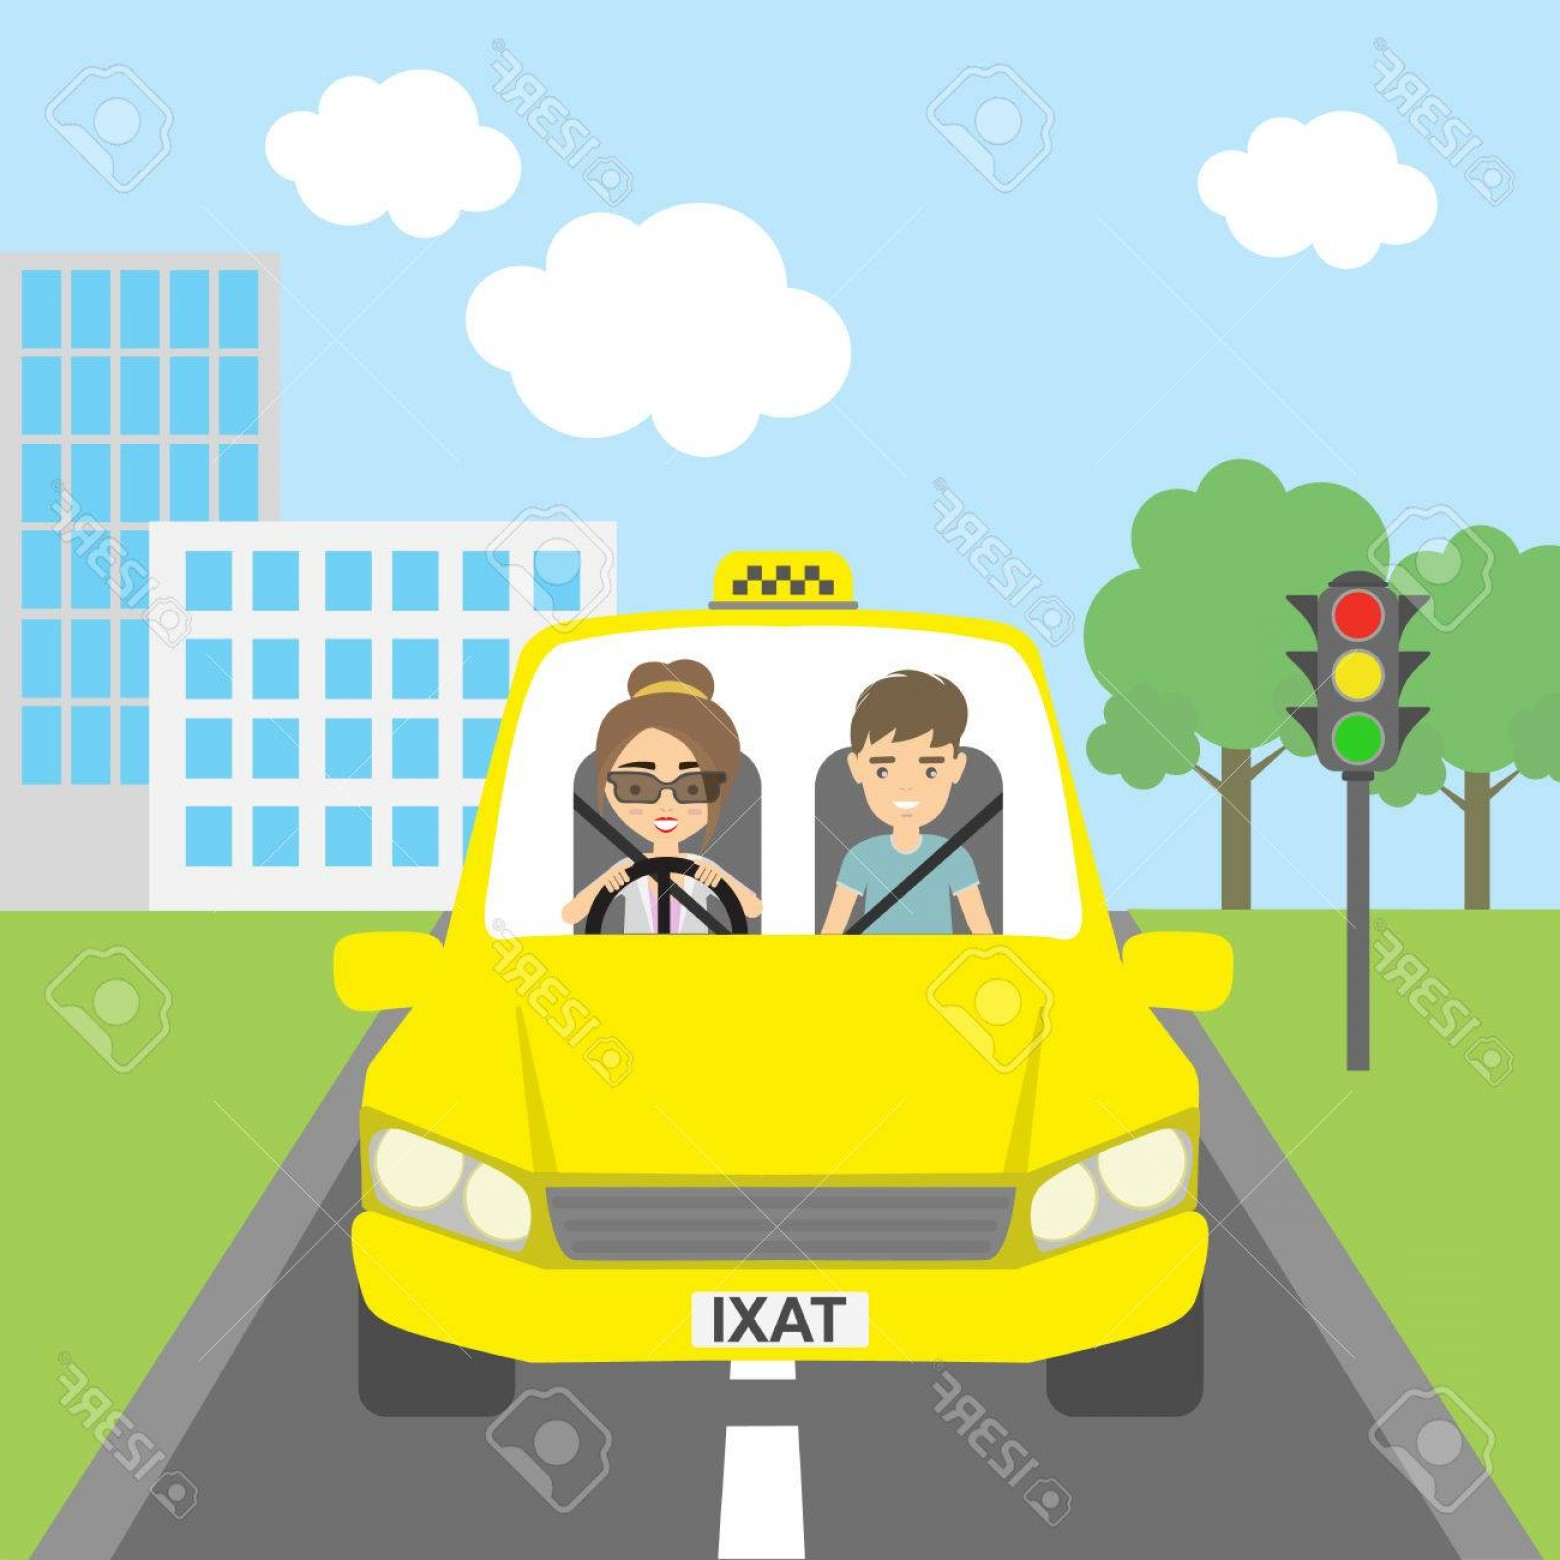 Vector Taxi Cab Driver: Photostock Vector Taxi Driver With Passenger Smiling People In Yellow Cab Riding On The City Street Yellow Car For Urb